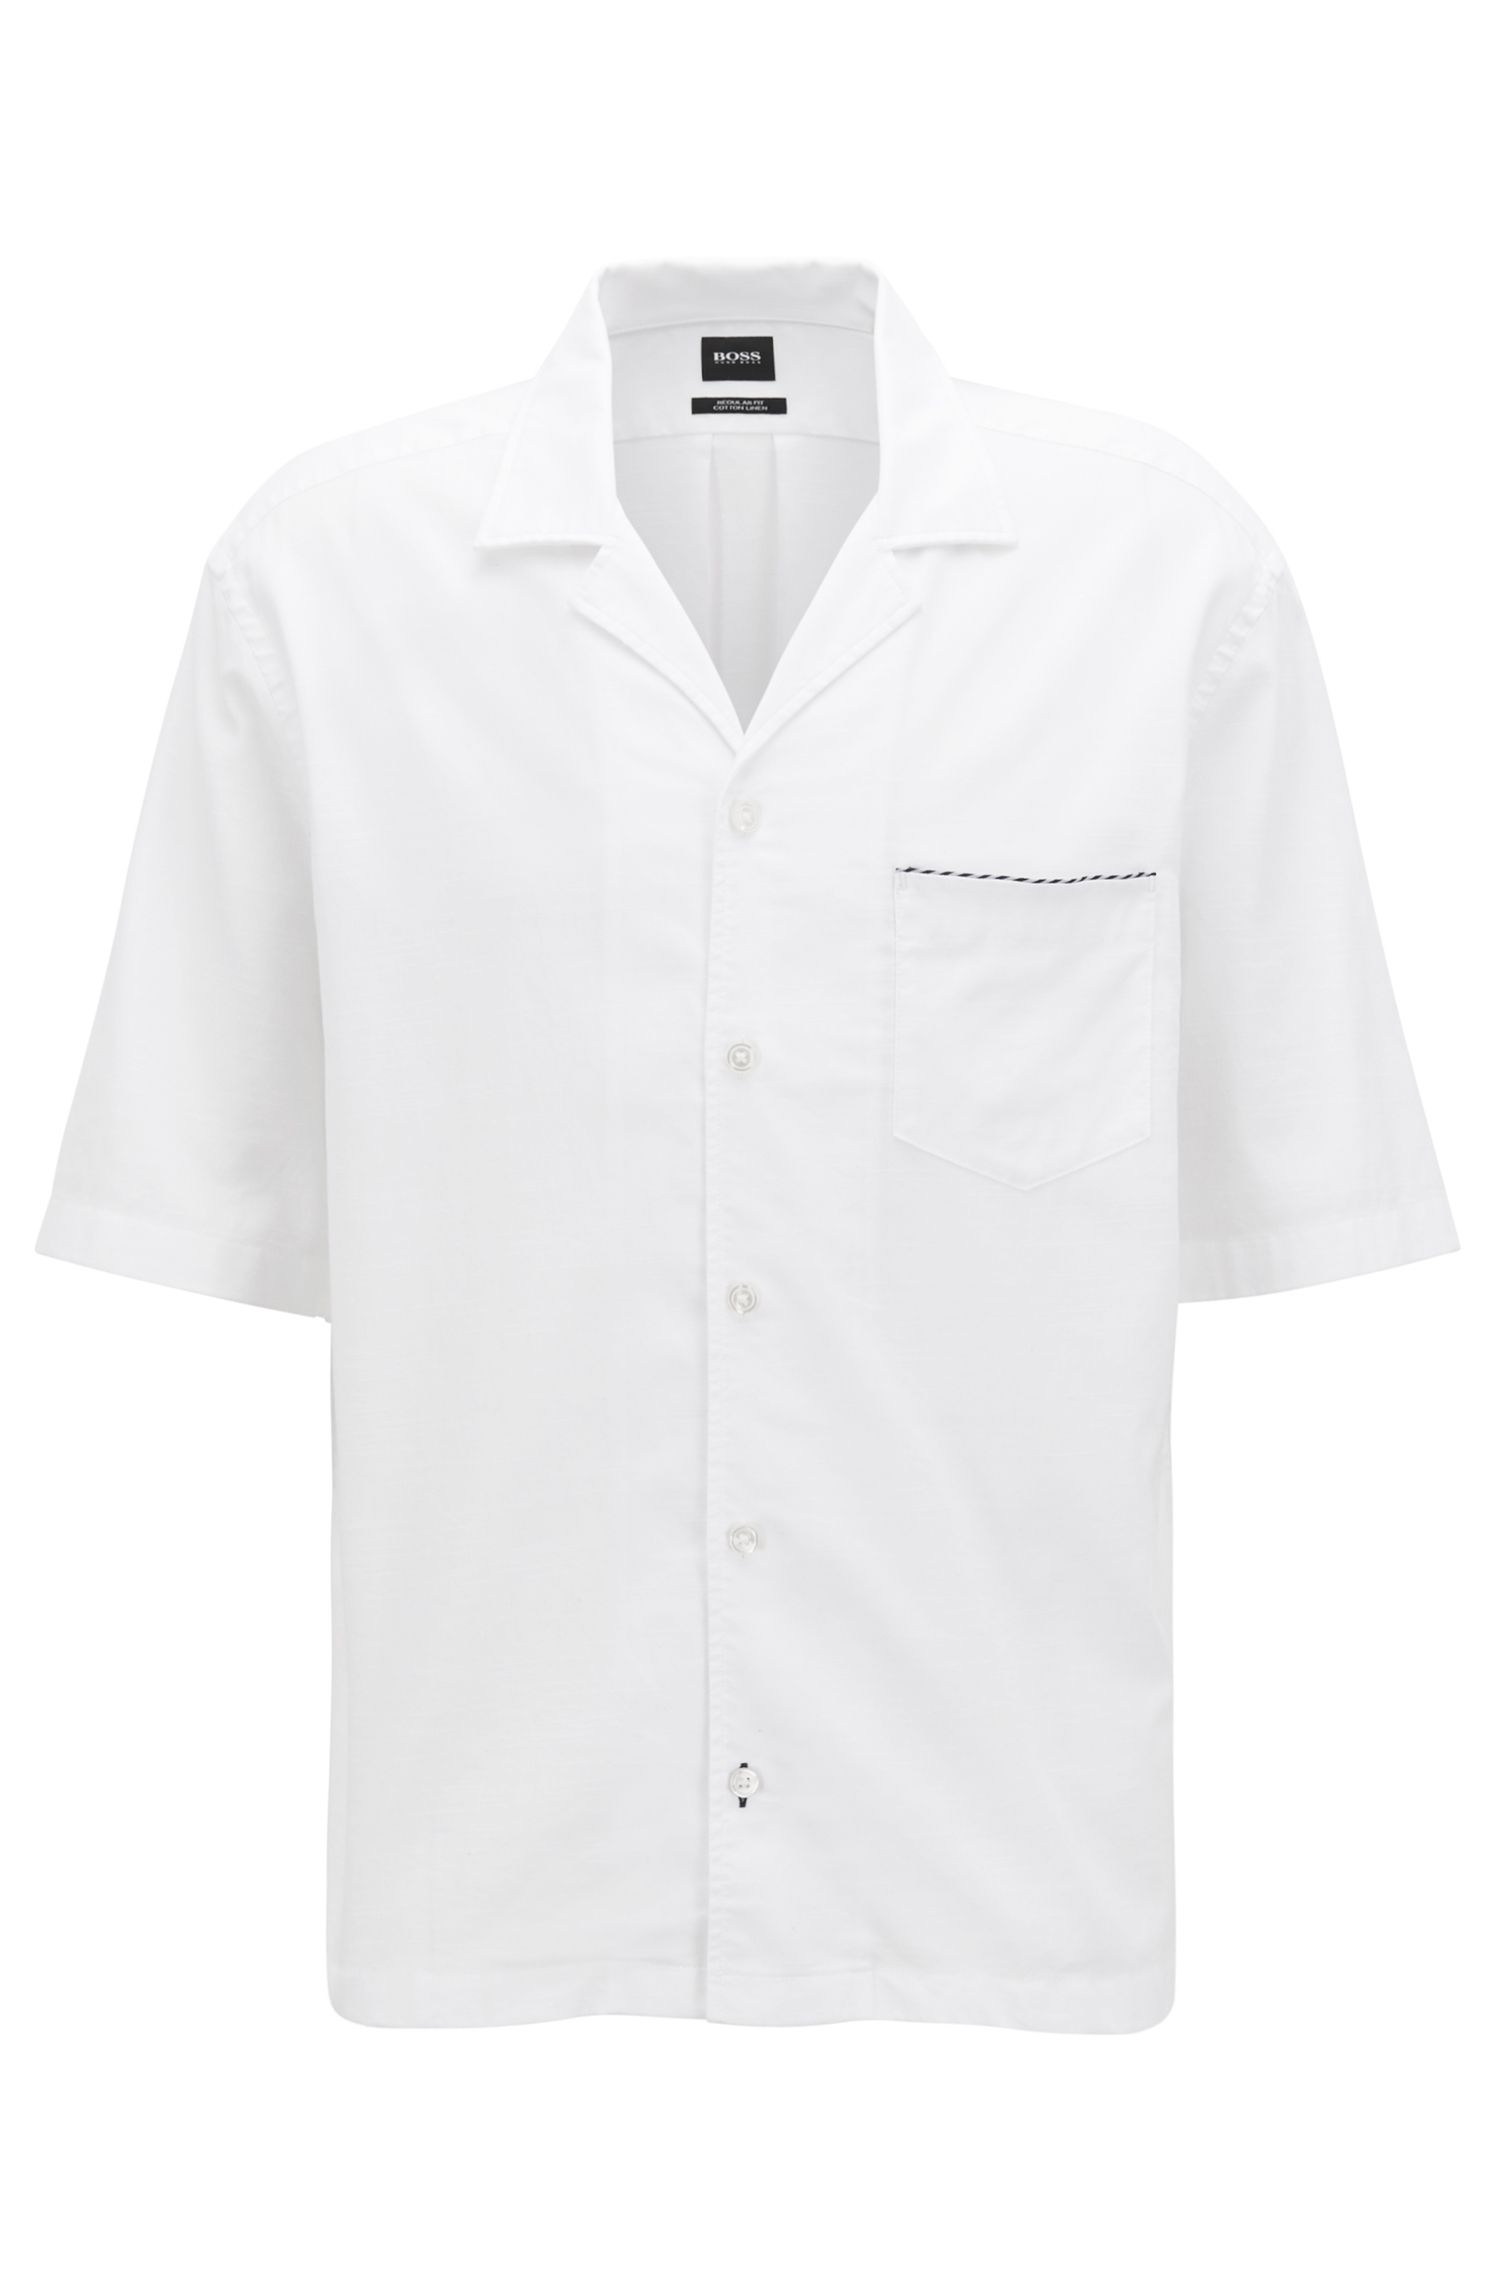 Short-sleeved cotton-blend shirt in a slim fit